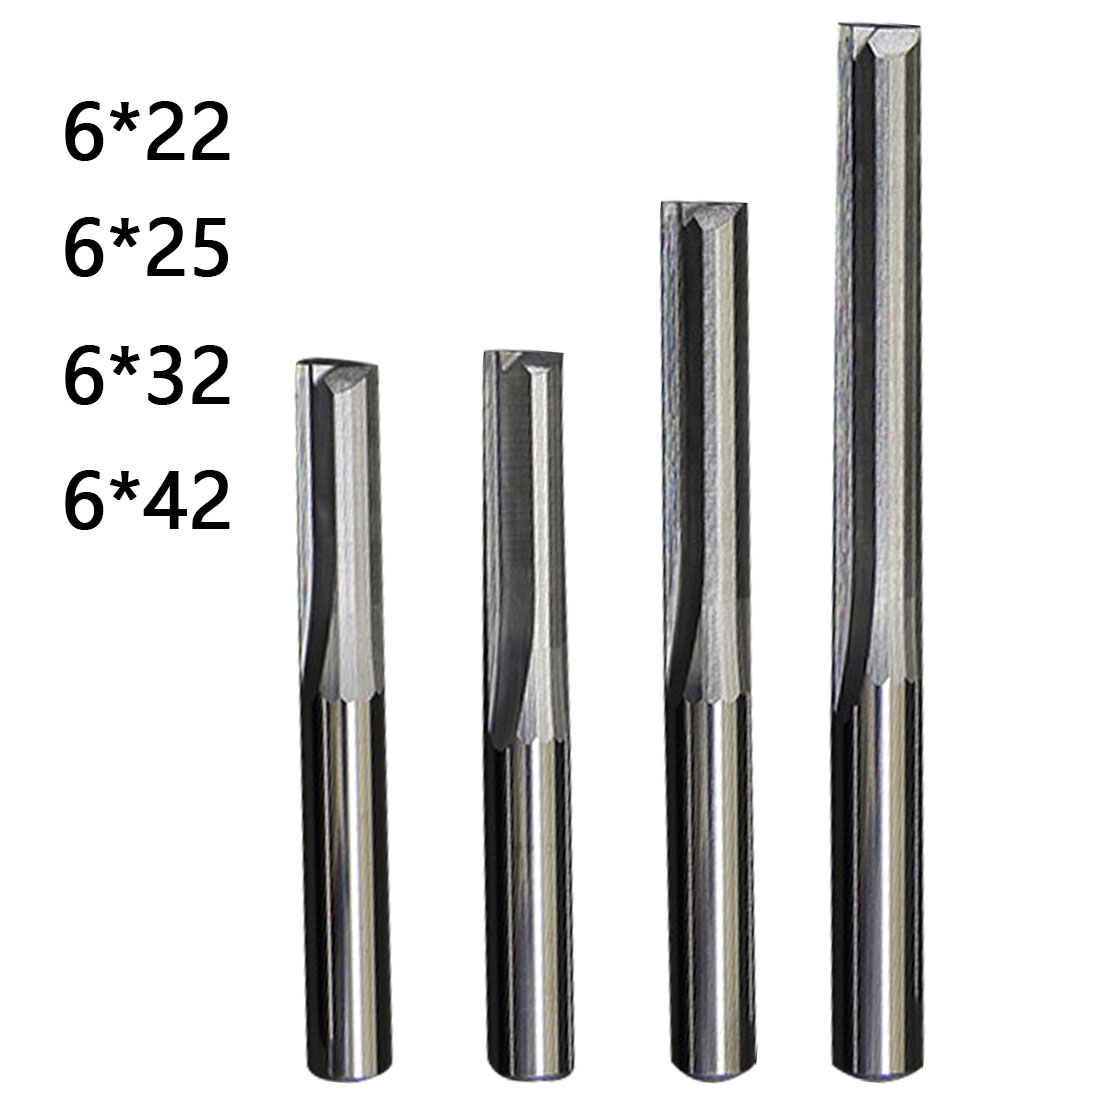 Milling Cutter 1pc 6mm/4mm Shank Two Flutes Straight Router Bits For Wood CNC Straight Engraving Cutters End Mill Tools